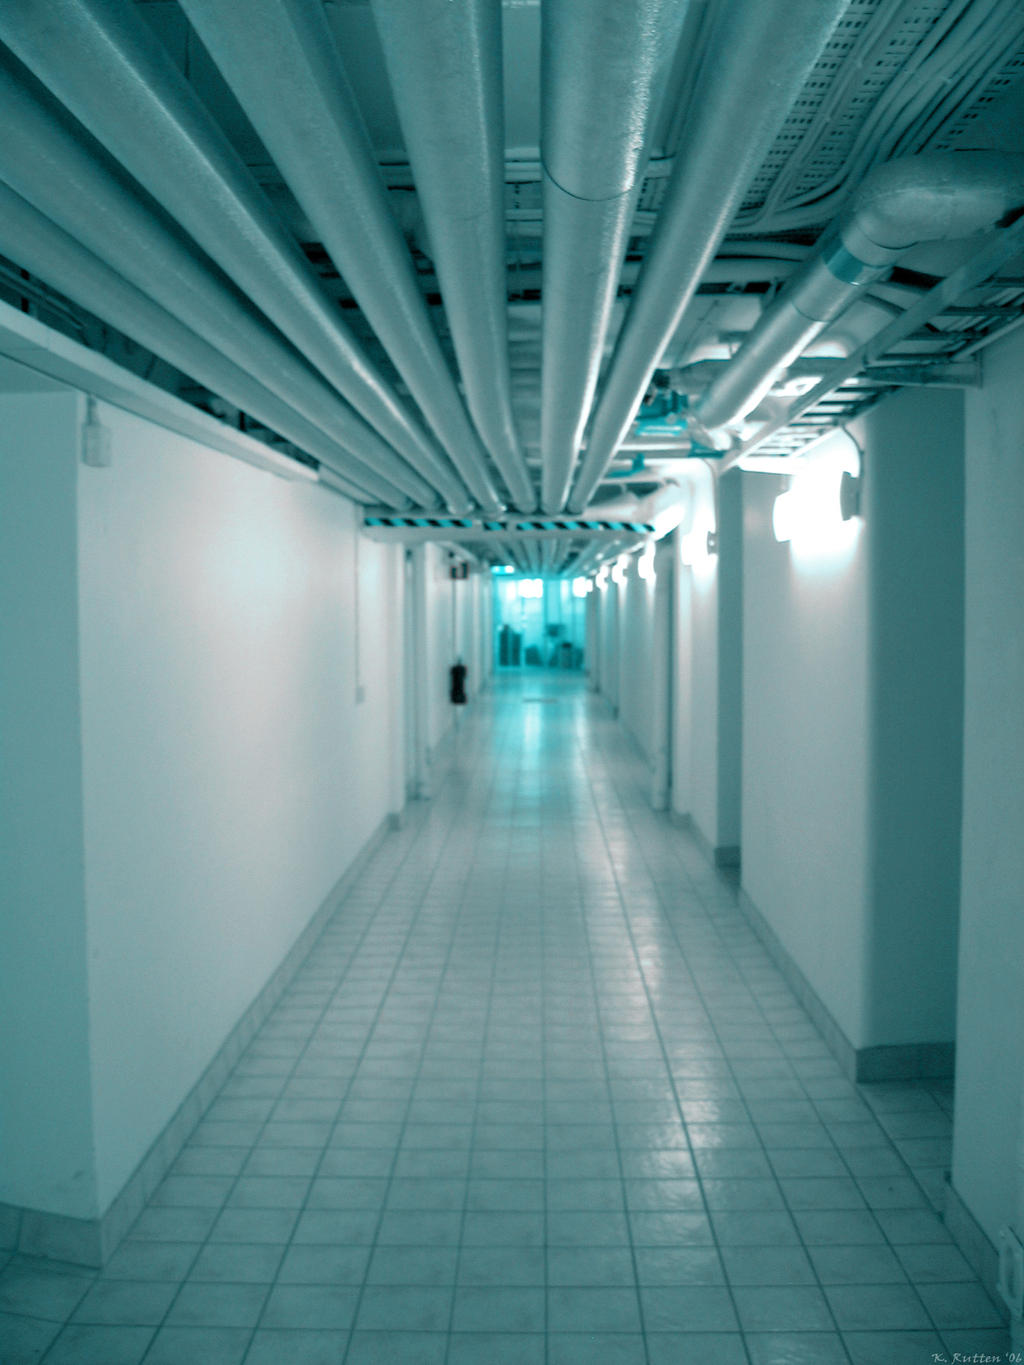 Basement corridor by dreamk8 on deviantart - Kleur corridor ...